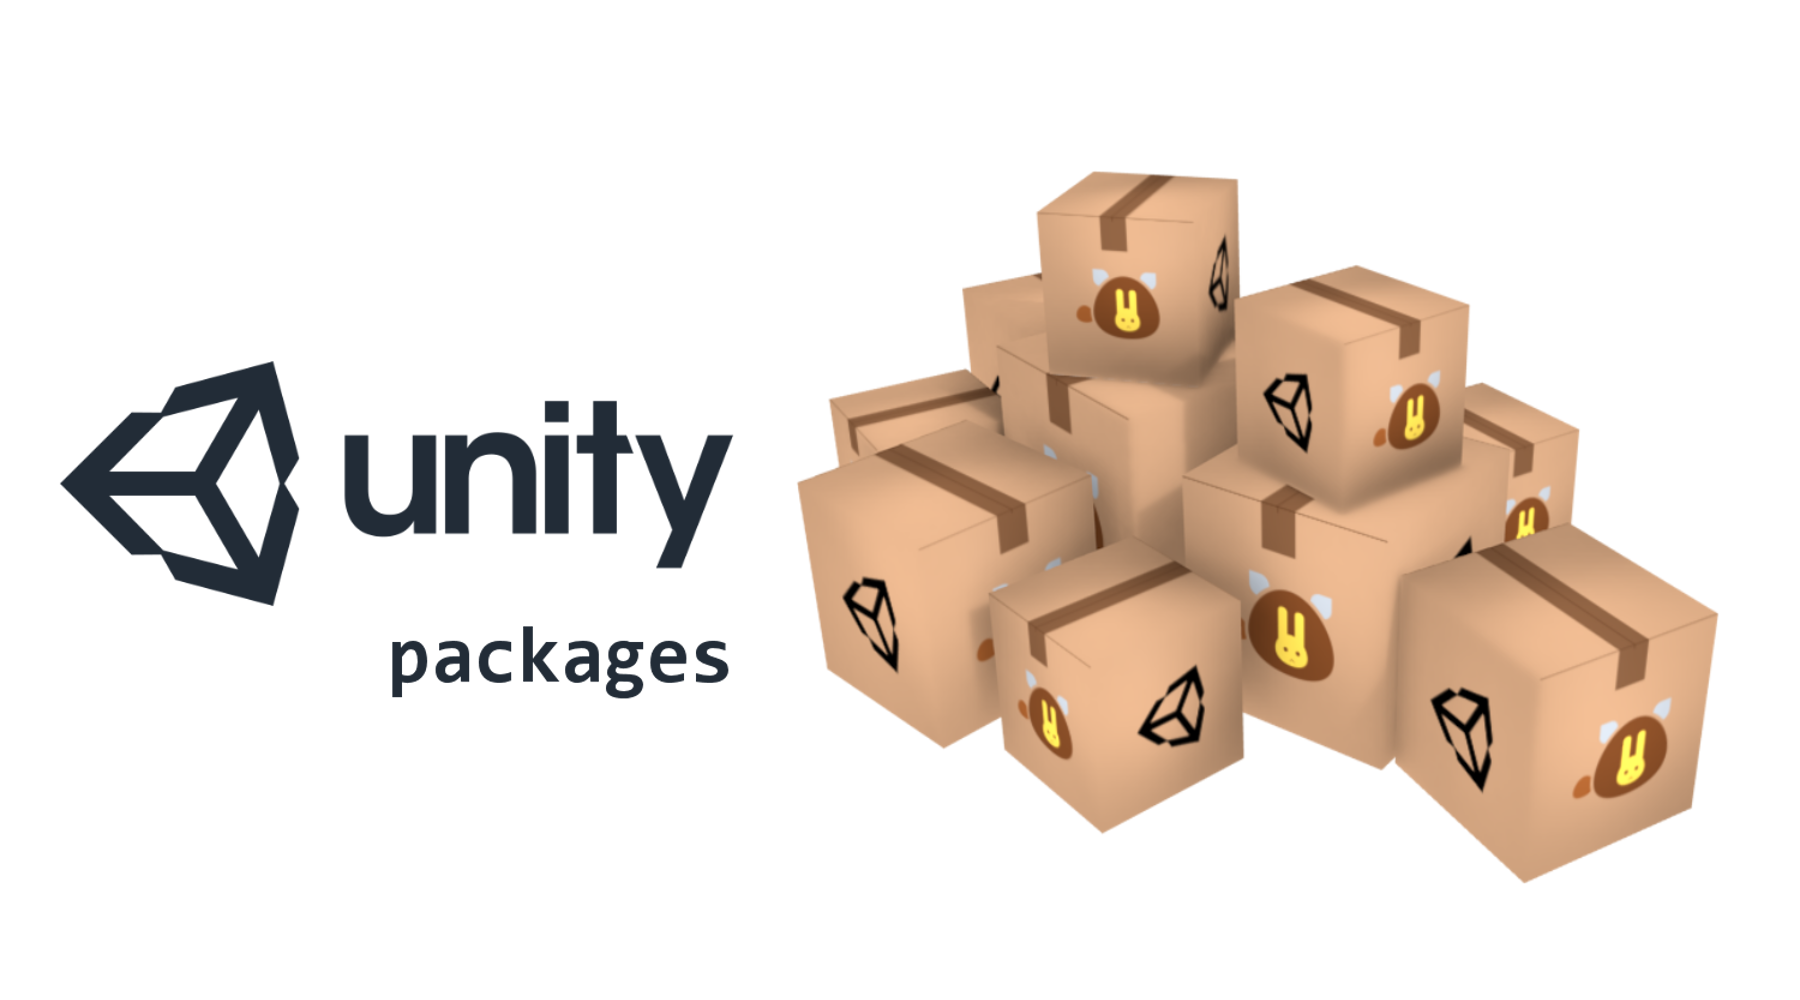 Bun Bun studios offer custom made to ready made unity 3D packages